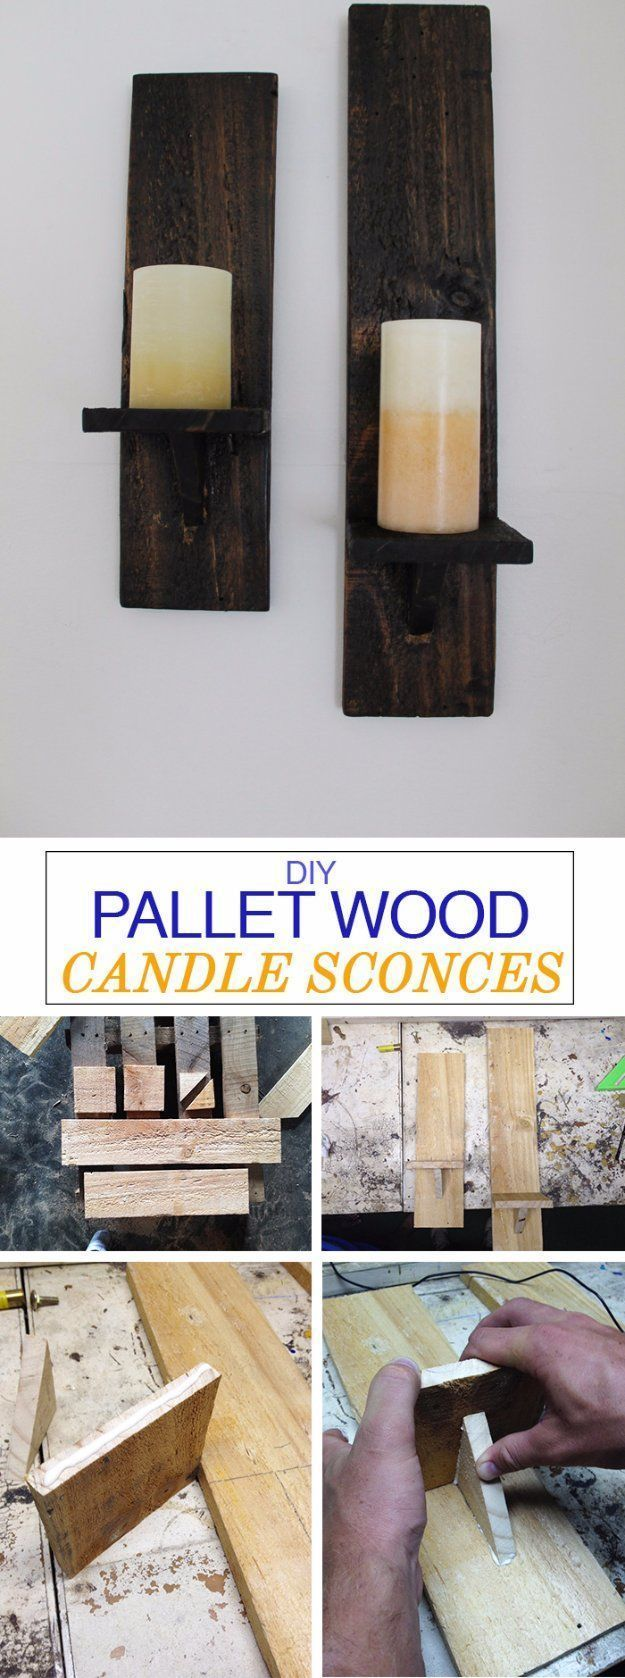 50 diy pallet furniture ideas madera carpintera y palets diy pallet furniture ideas pallet wood candle sconces best do it yourself projects made with wooden pallets indoor and outdoor bedroom living room solutioingenieria Images